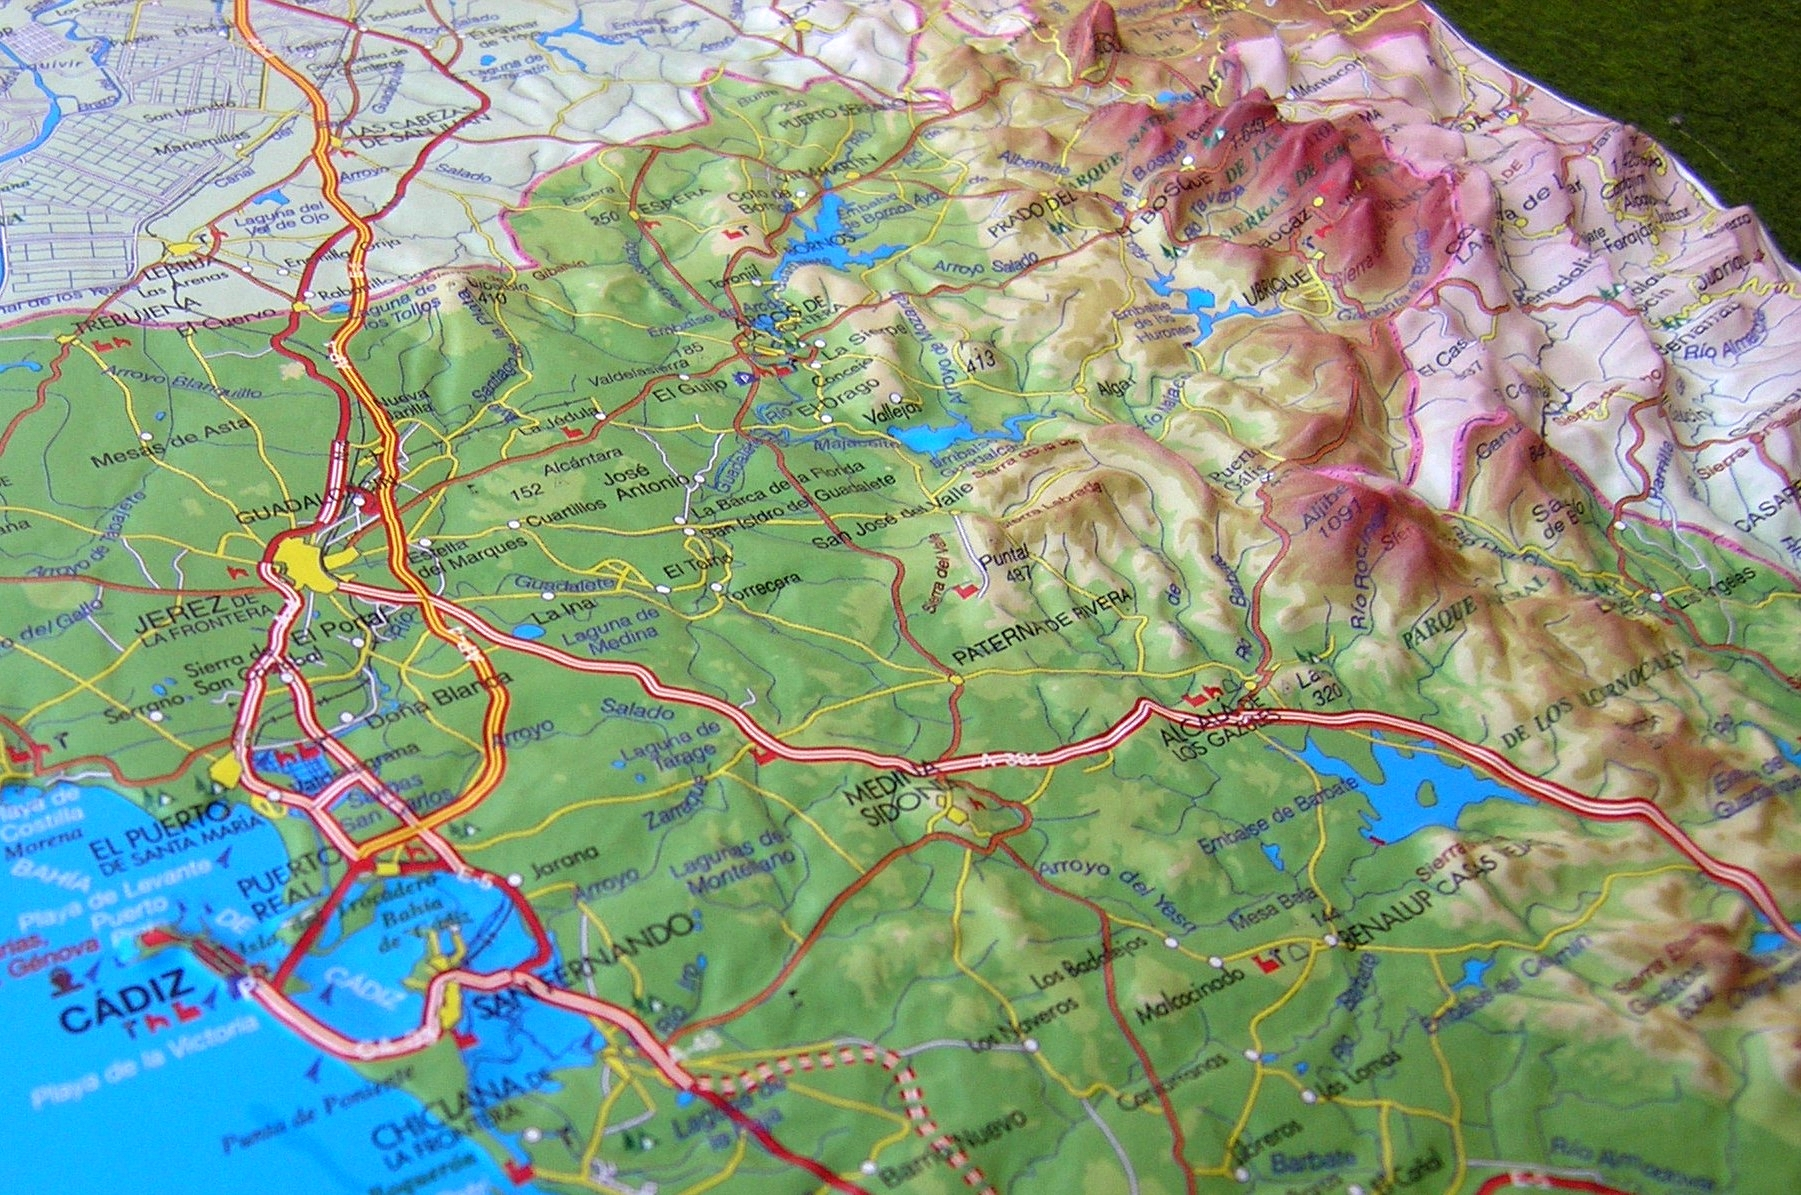 South Of Spain Map.Raised Relief Map Of Cadiz South Spain As 3d Map